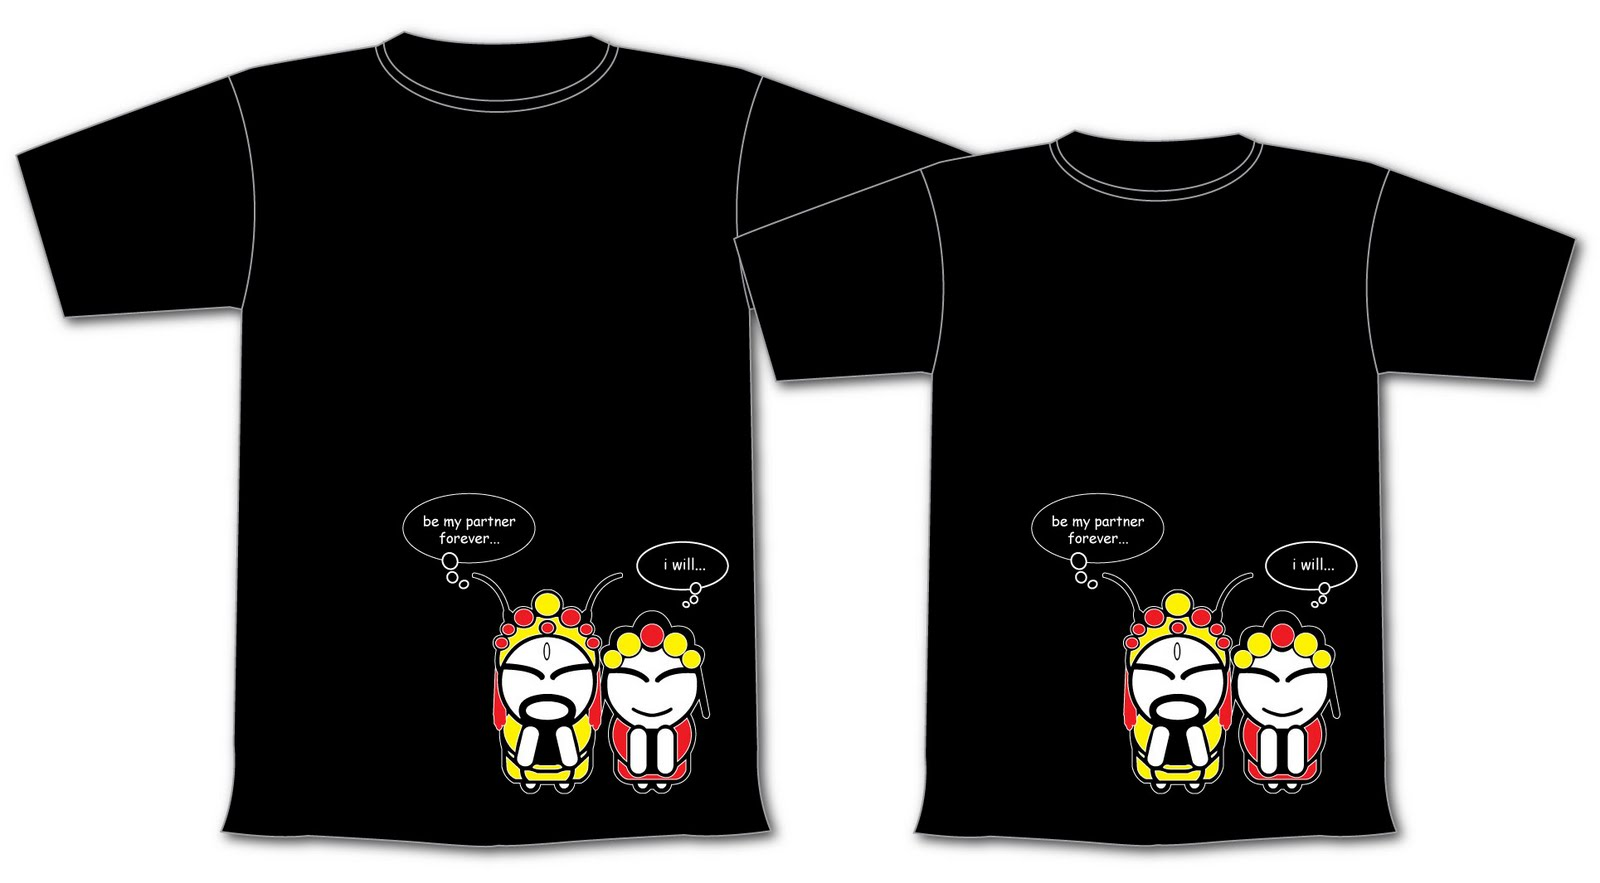 T Shirt Couple Design Joy Studio Design Gallery Best